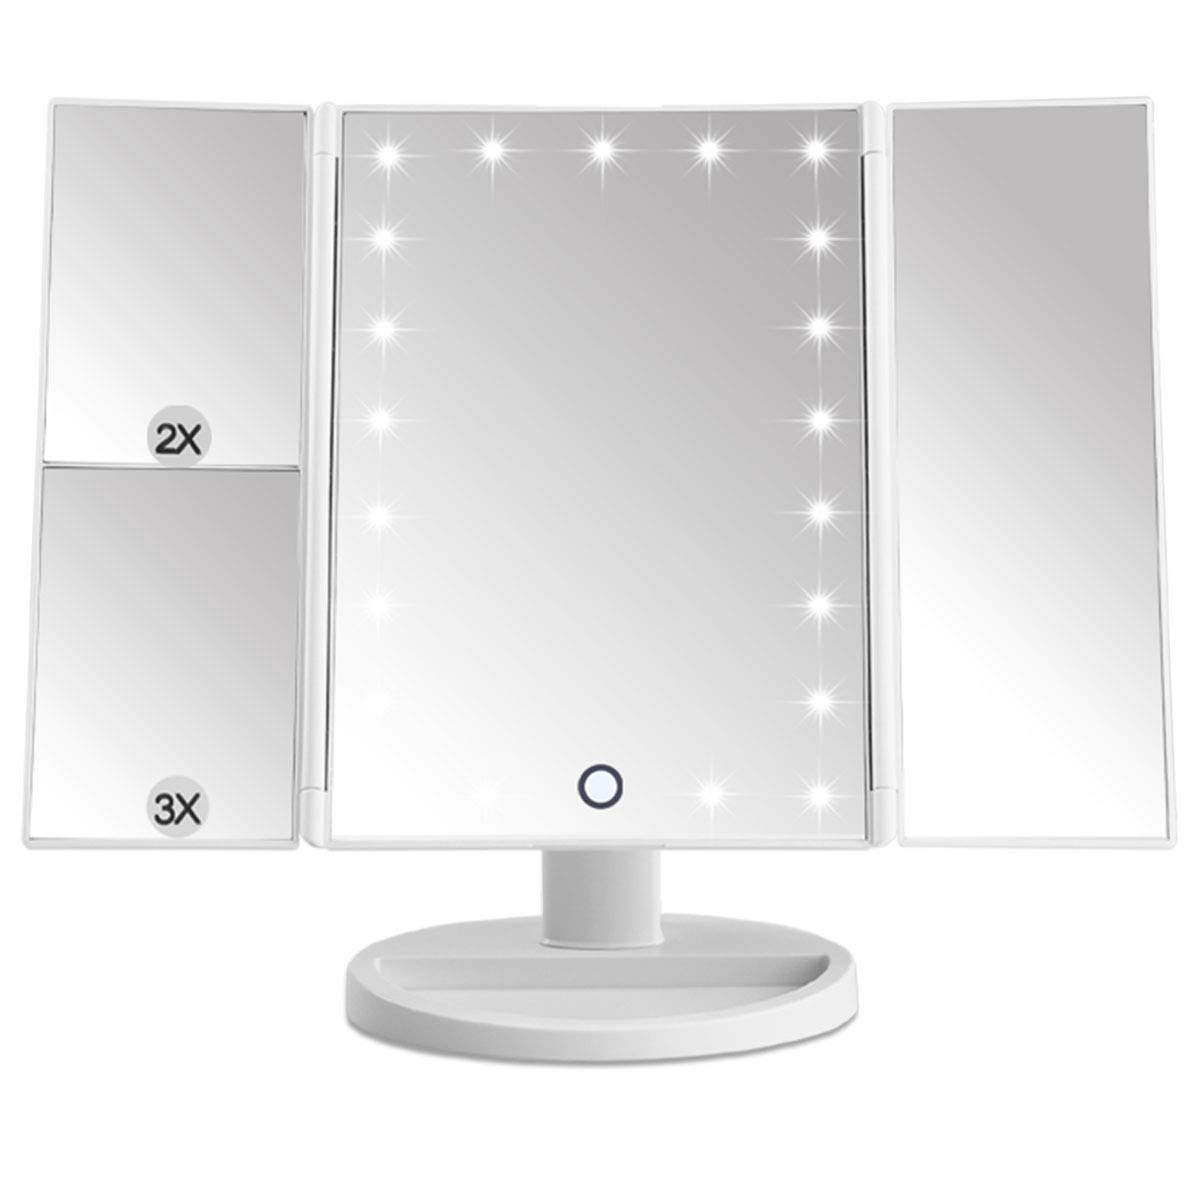 EMOCCI LED Makeup Mirror 21 Led Lighted Vanity Mirrors Tri Fold Adjustable with 3X 2X Magnification 180 Degree Rotation USB Charging for Cosmetic Travel Table Countertop Bathroom with Gift Box(White)